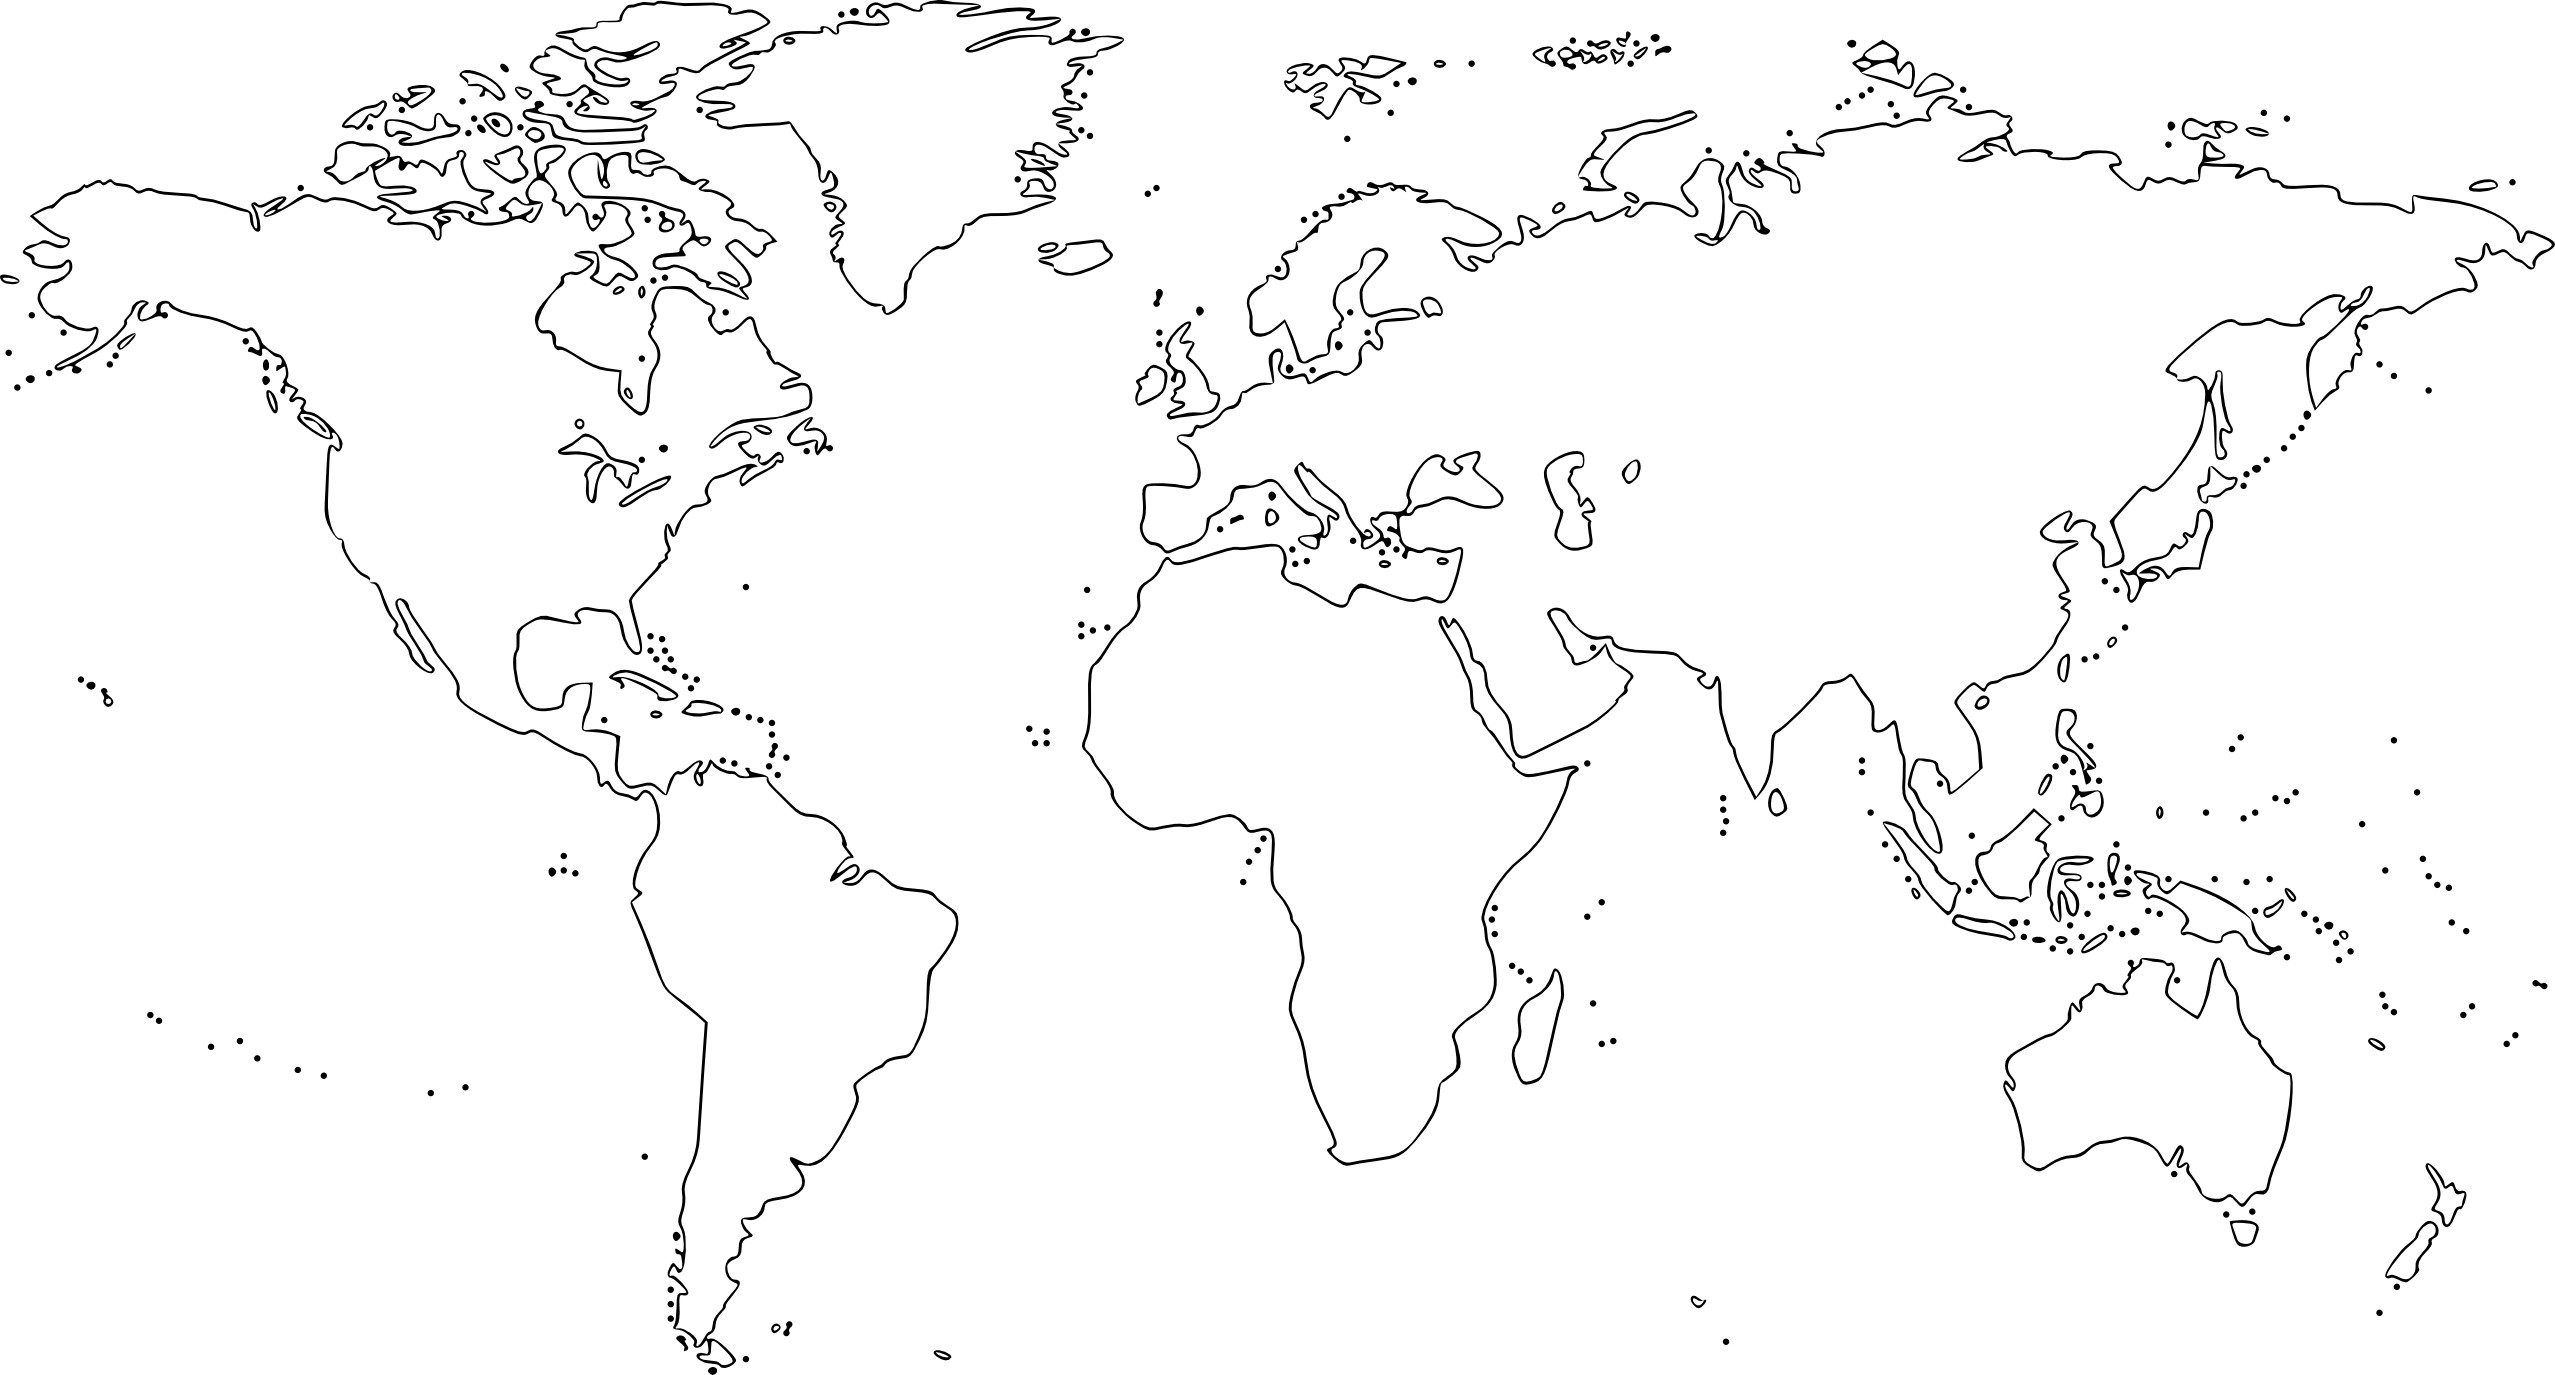 World Drawing Tumblr At Getdrawings Com Free For Personal Use